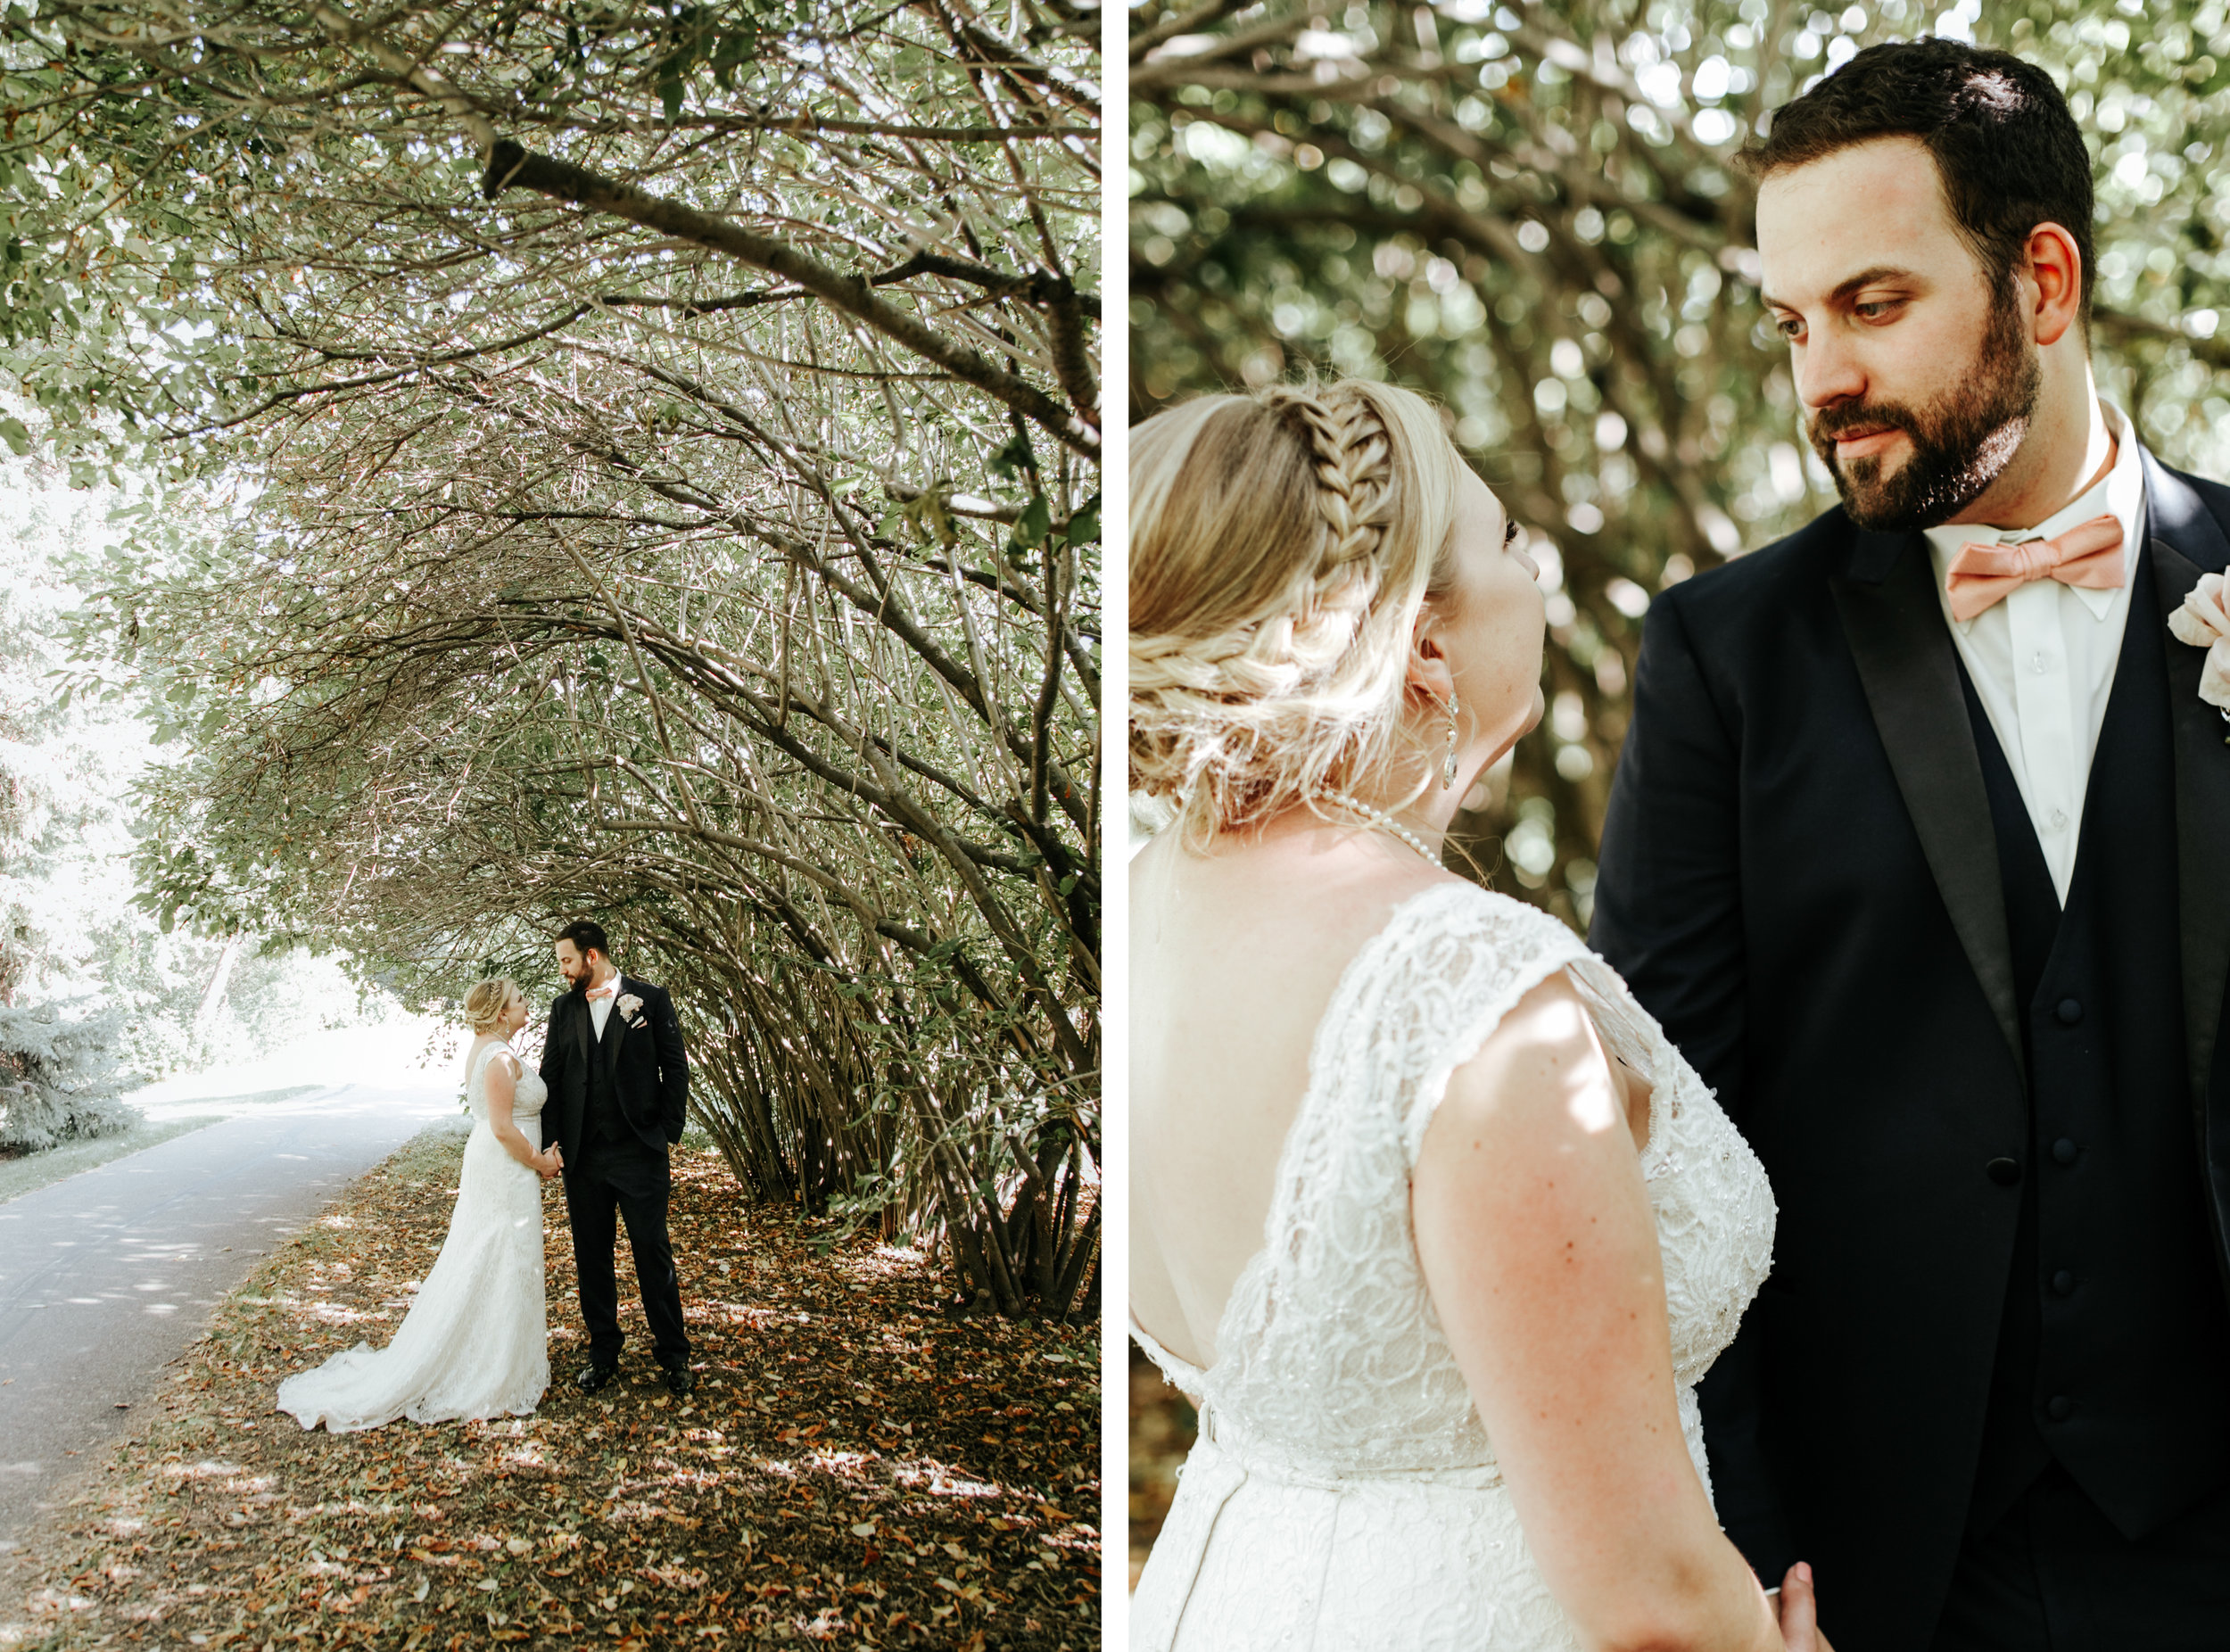 red-deer-wedding-photographer-love-and-be-loved-photography-emily-gab-photo-image-picture-157.jpg